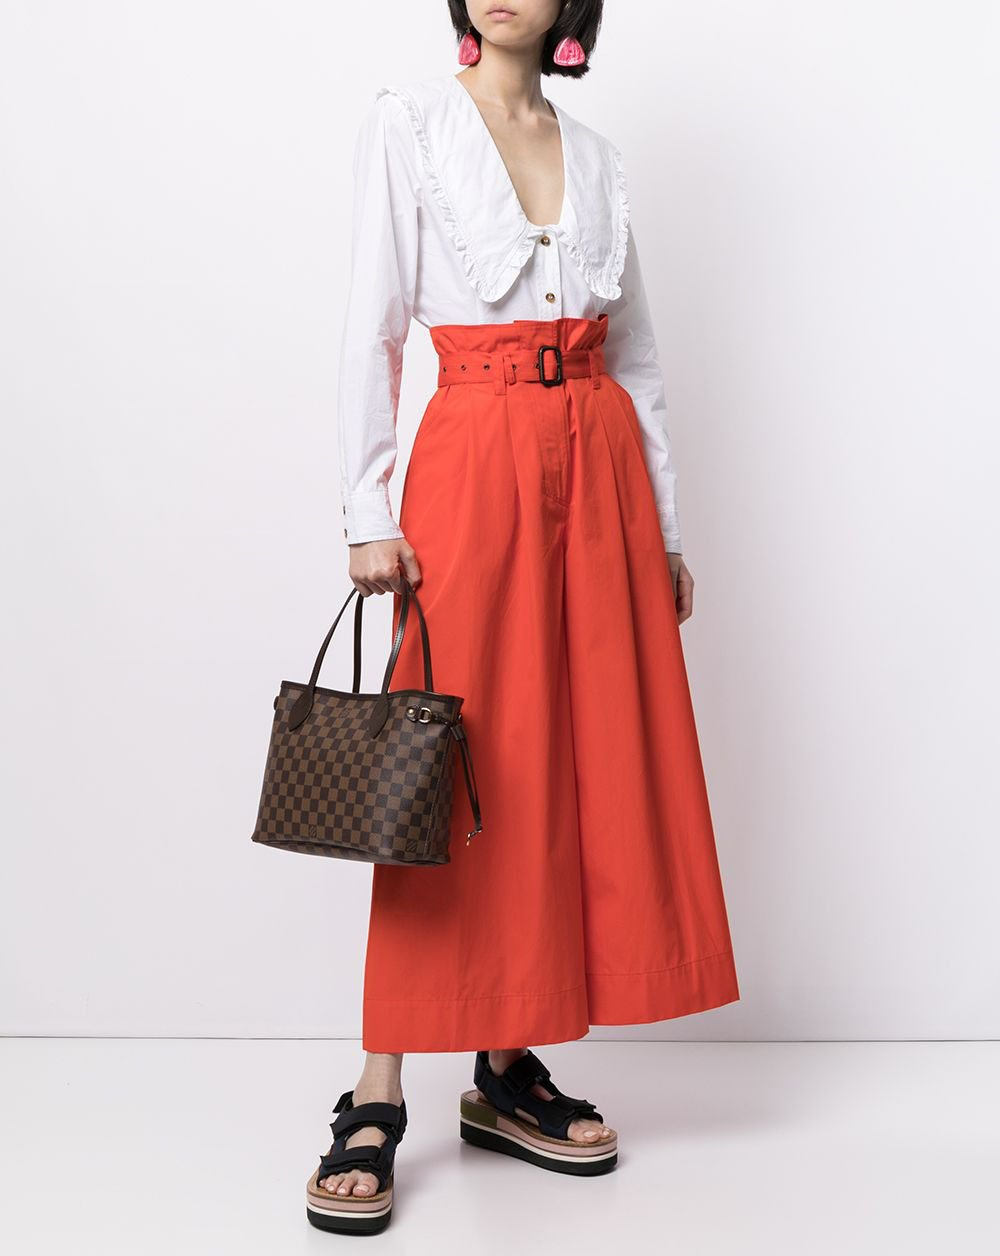 Roomy but not bulky, the Louis Vuitton Neverfull is a practical bag with a classic timeless design